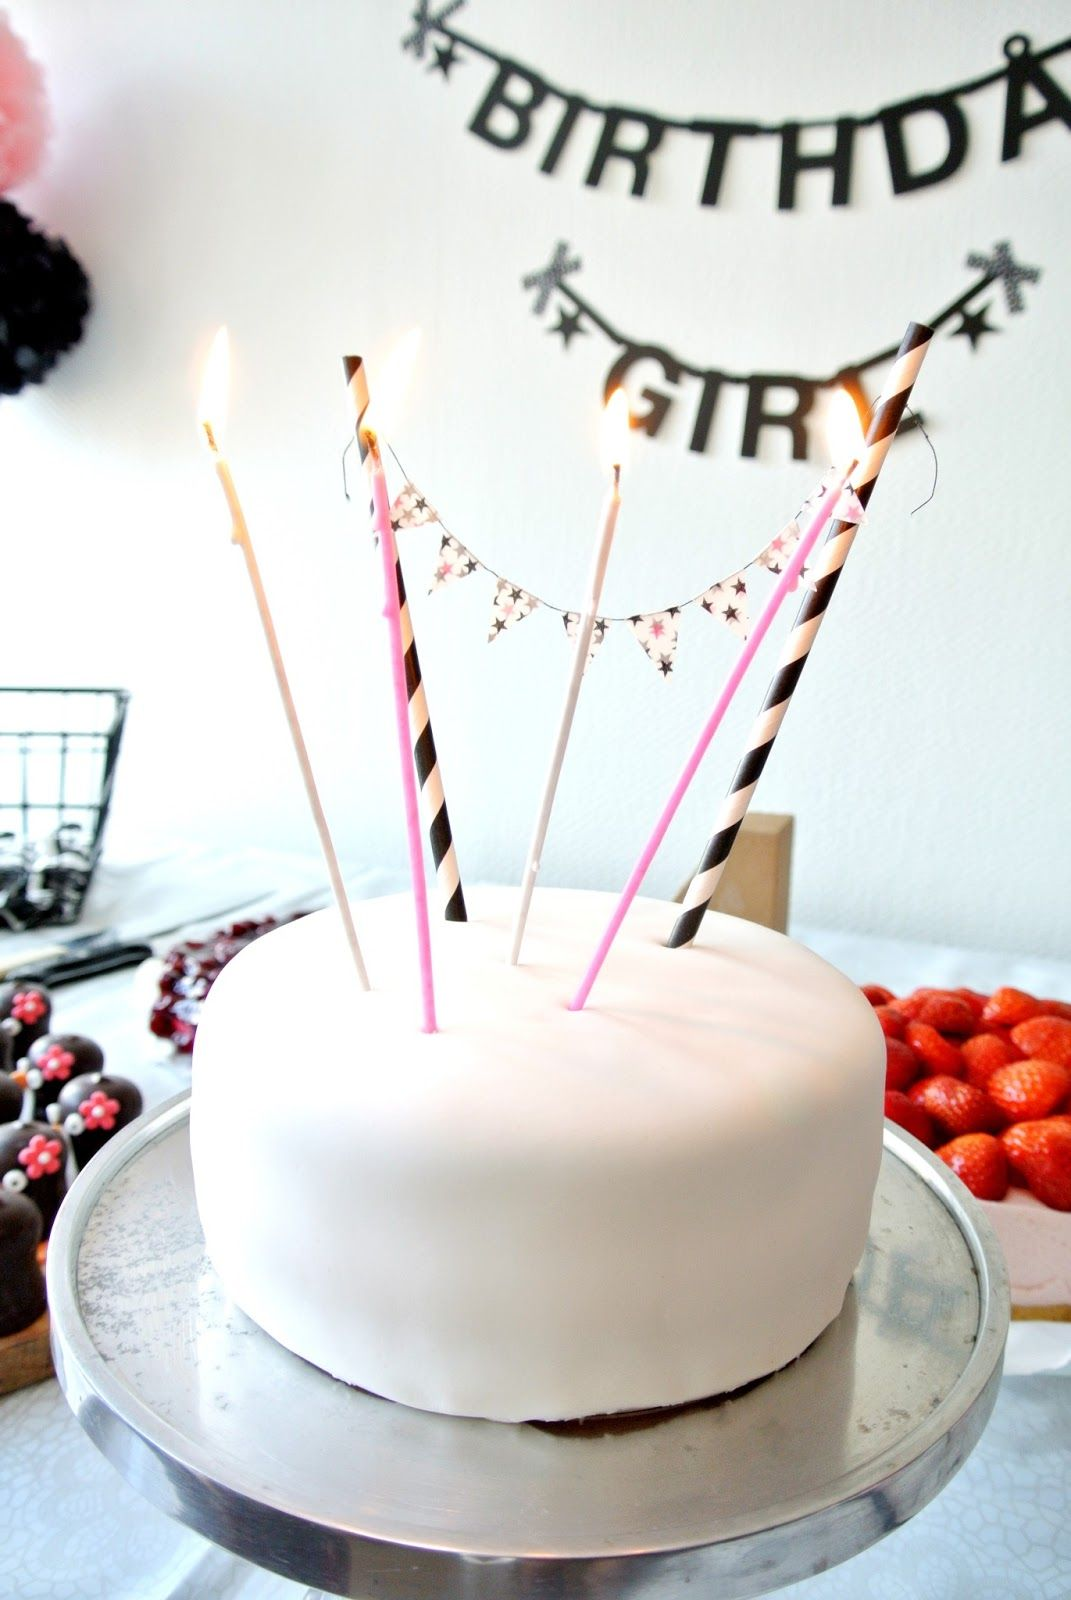 Birthday Cake Banner Black White Pink Pastry Pinterest Cake